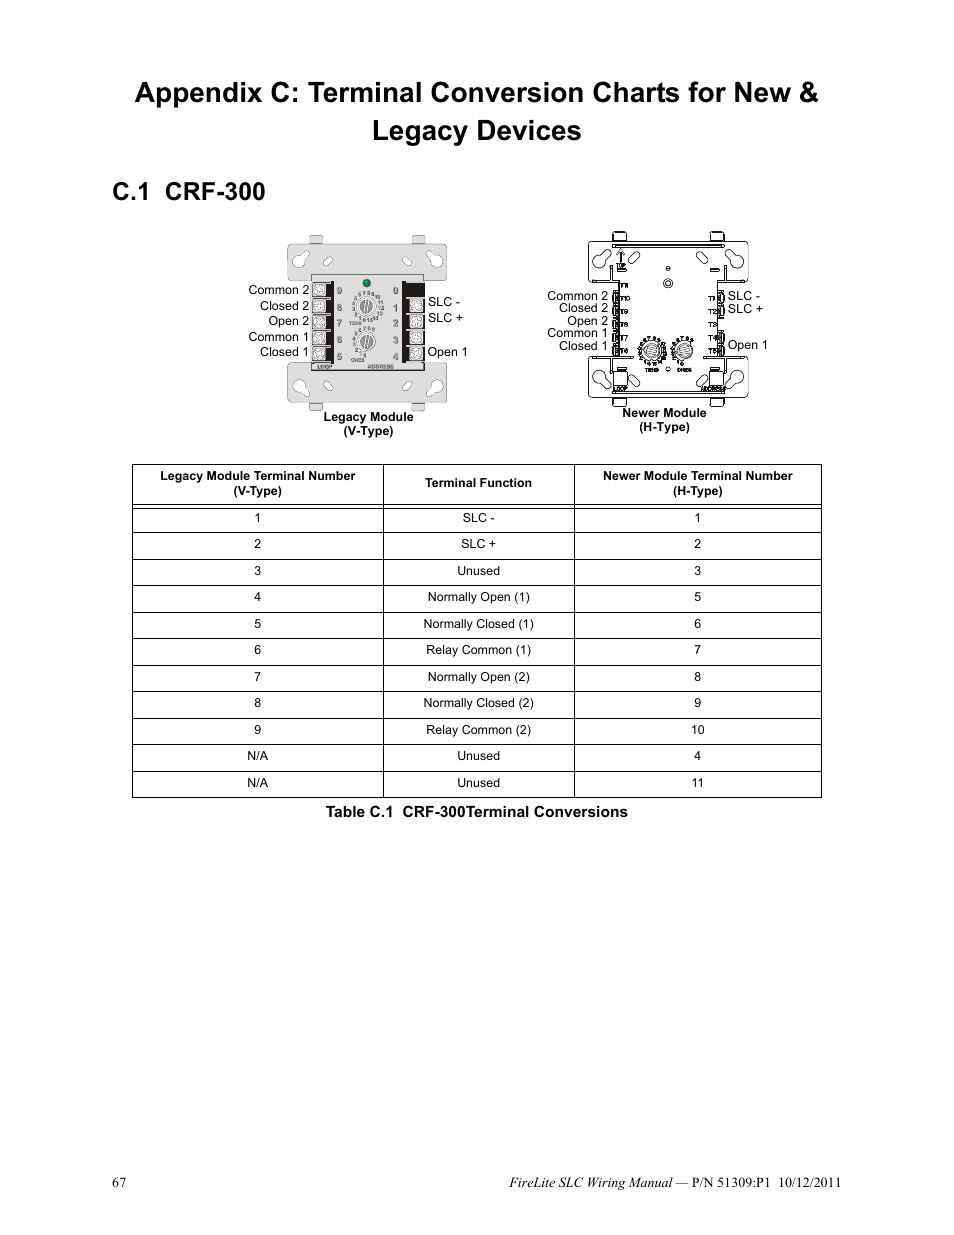 C1 Crf 300 Fire Lite Slc Intelligent Control Panel Wiring Diagram Manual User Page 67 80